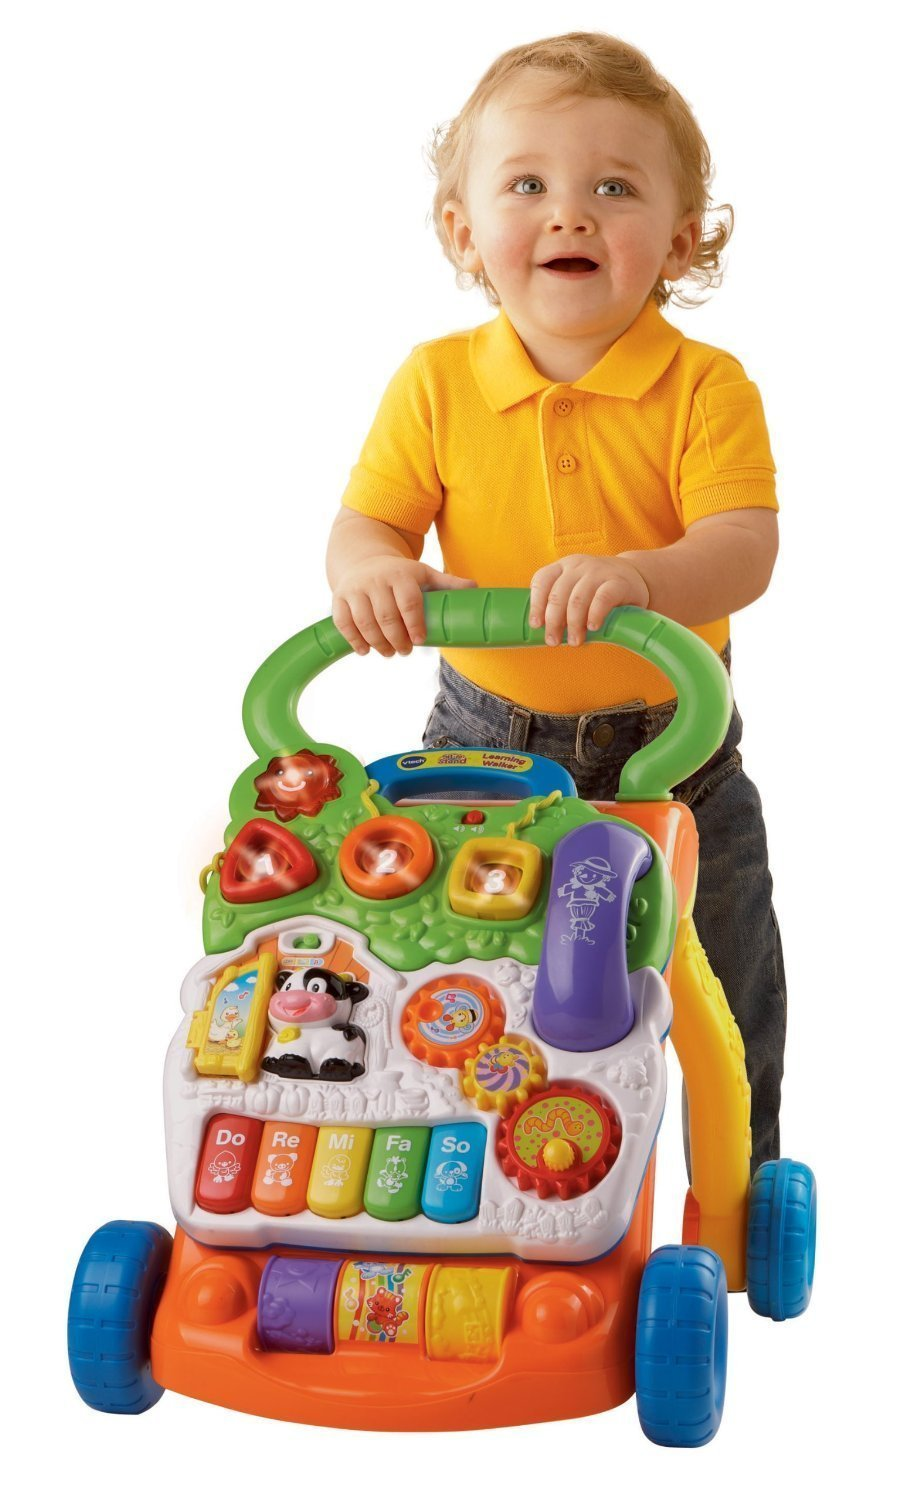 71nHNLMhgYL. SL1500  - VTech Sit-to-Stand Learning Walker